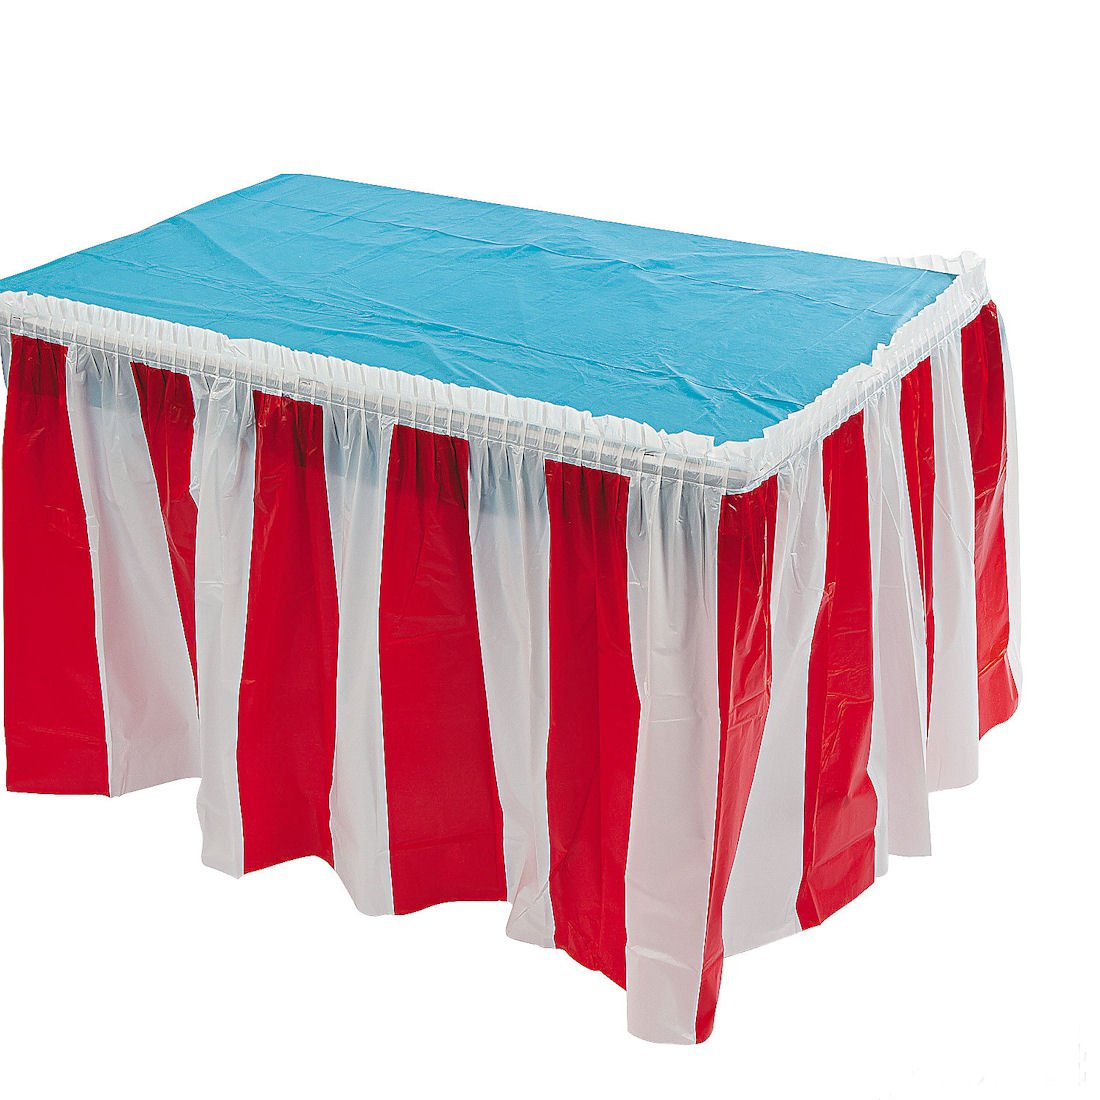 High Quality Amazon.com: 4 Pack Red U0026 White Striped Table Skirt Carnival Circus  Decorations: Toys U0026 Games